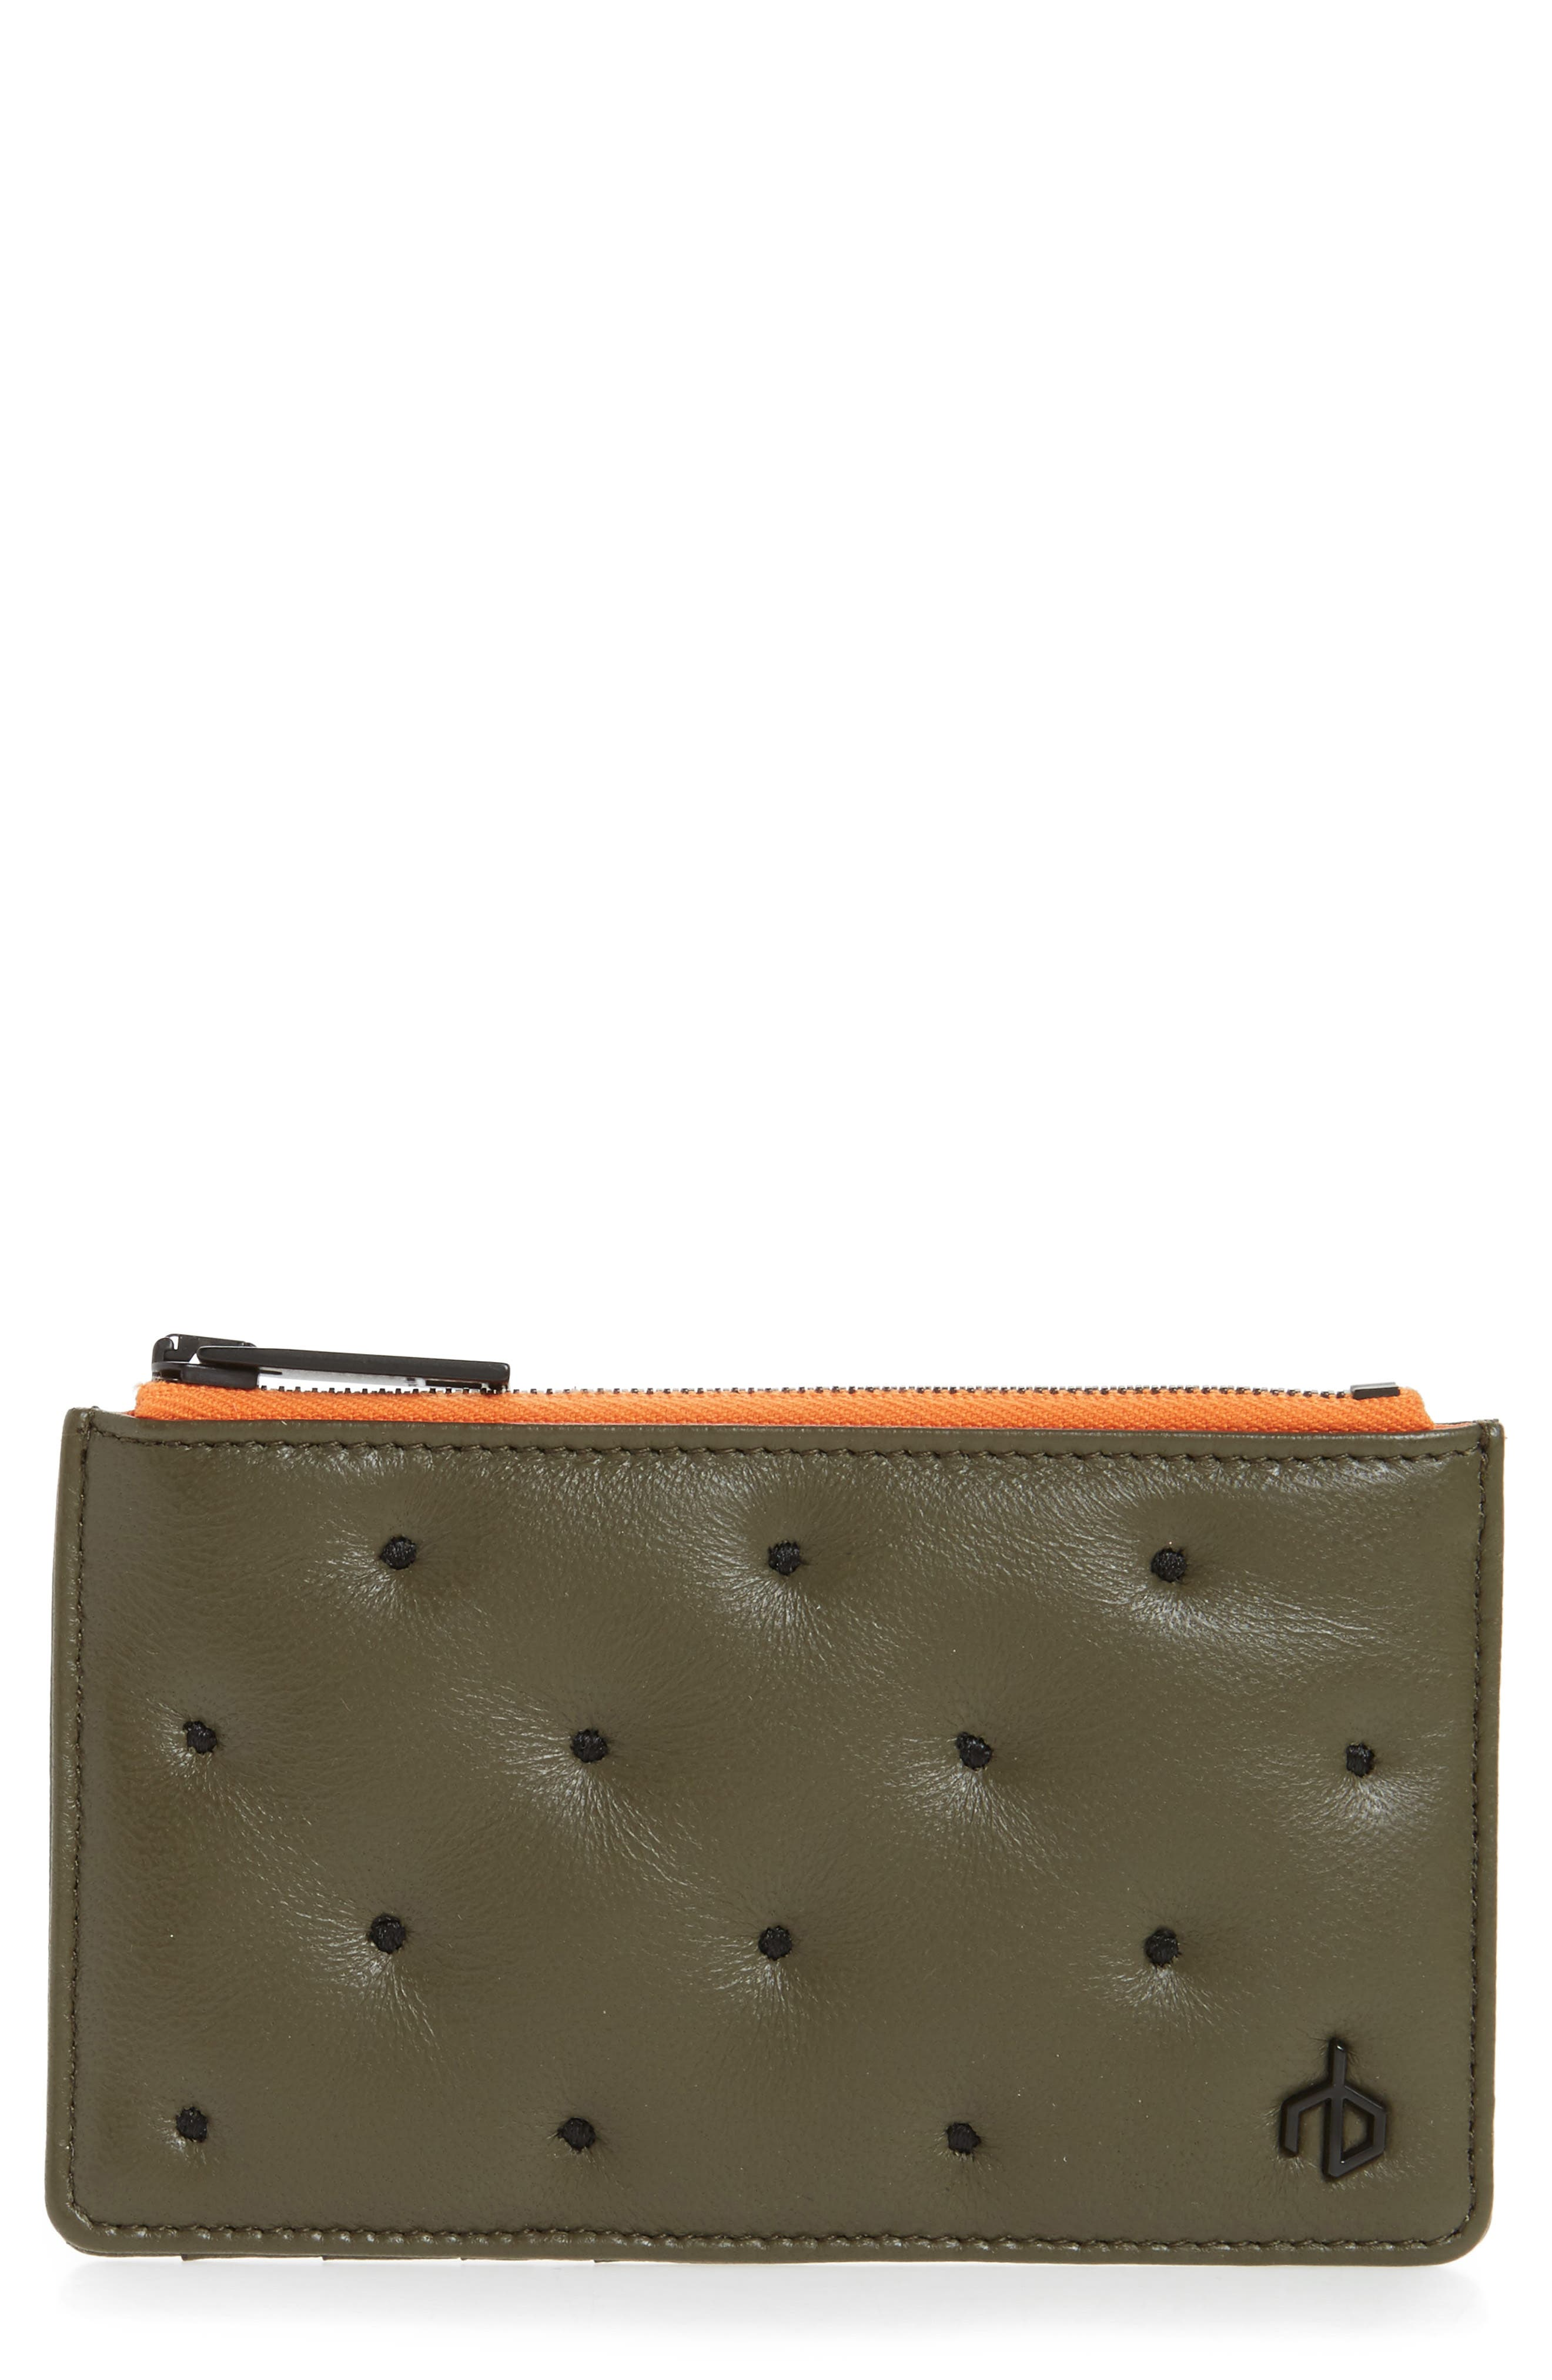 Dot Dash Quilted Leather Card Case,                             Main thumbnail 1, color,                             388